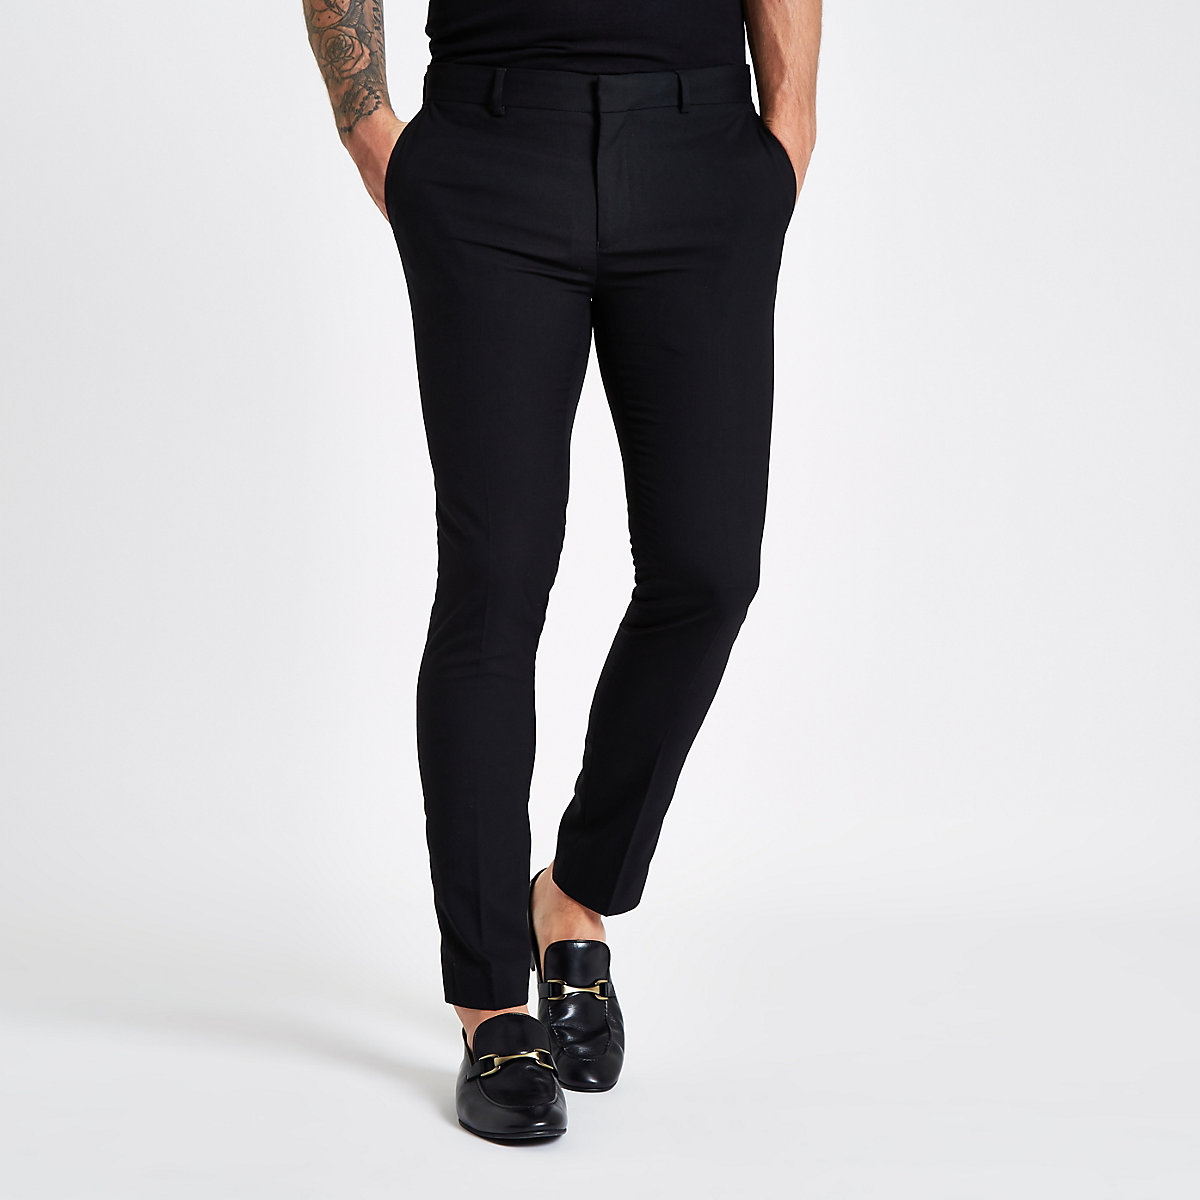 Black super skinny smart pants